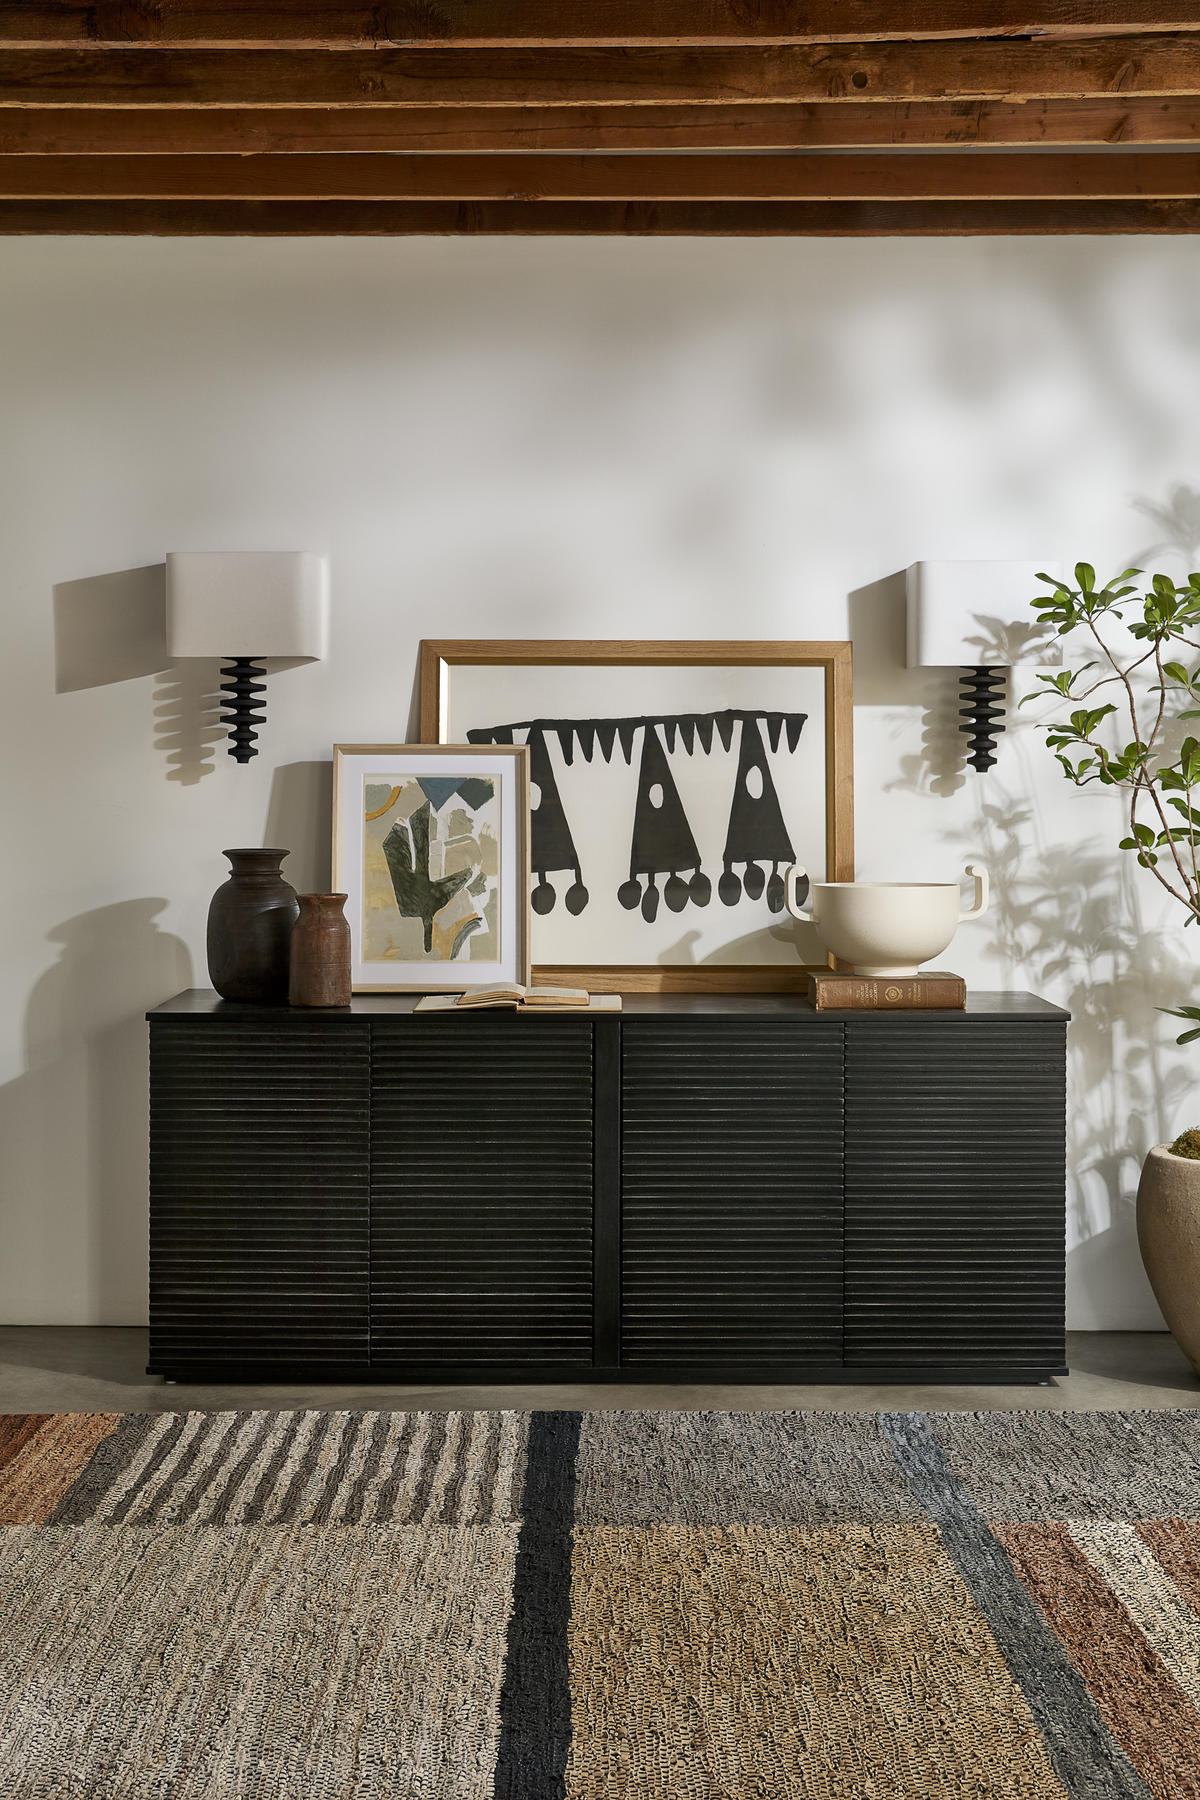 Tye sideboard from Lulu & Georgia